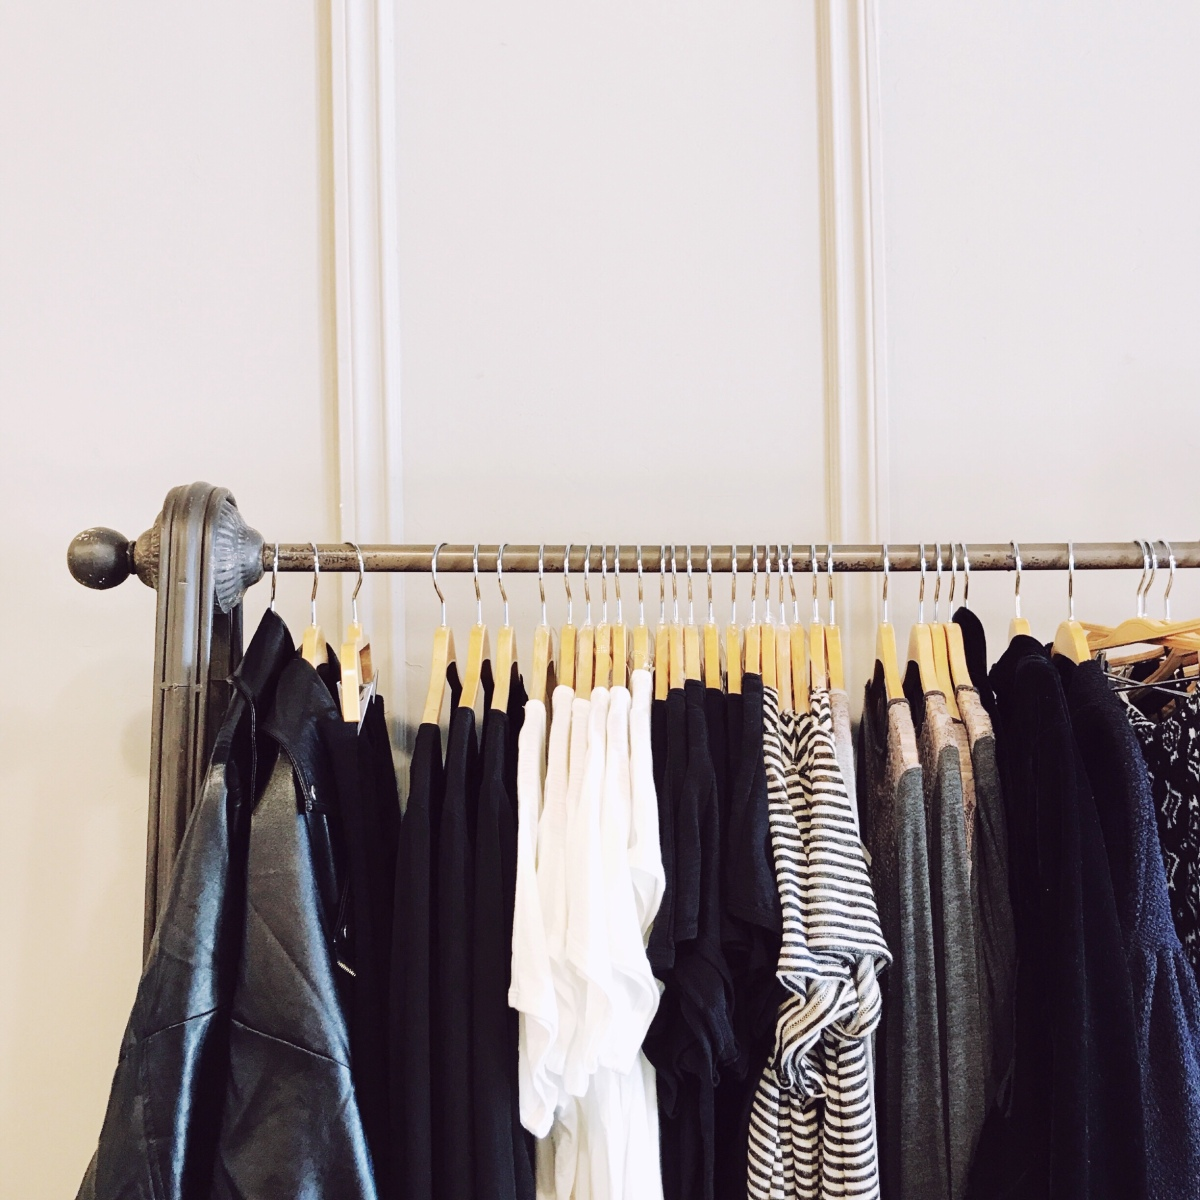 Seeking Simplicity, Part I: Creating a minimalist closet